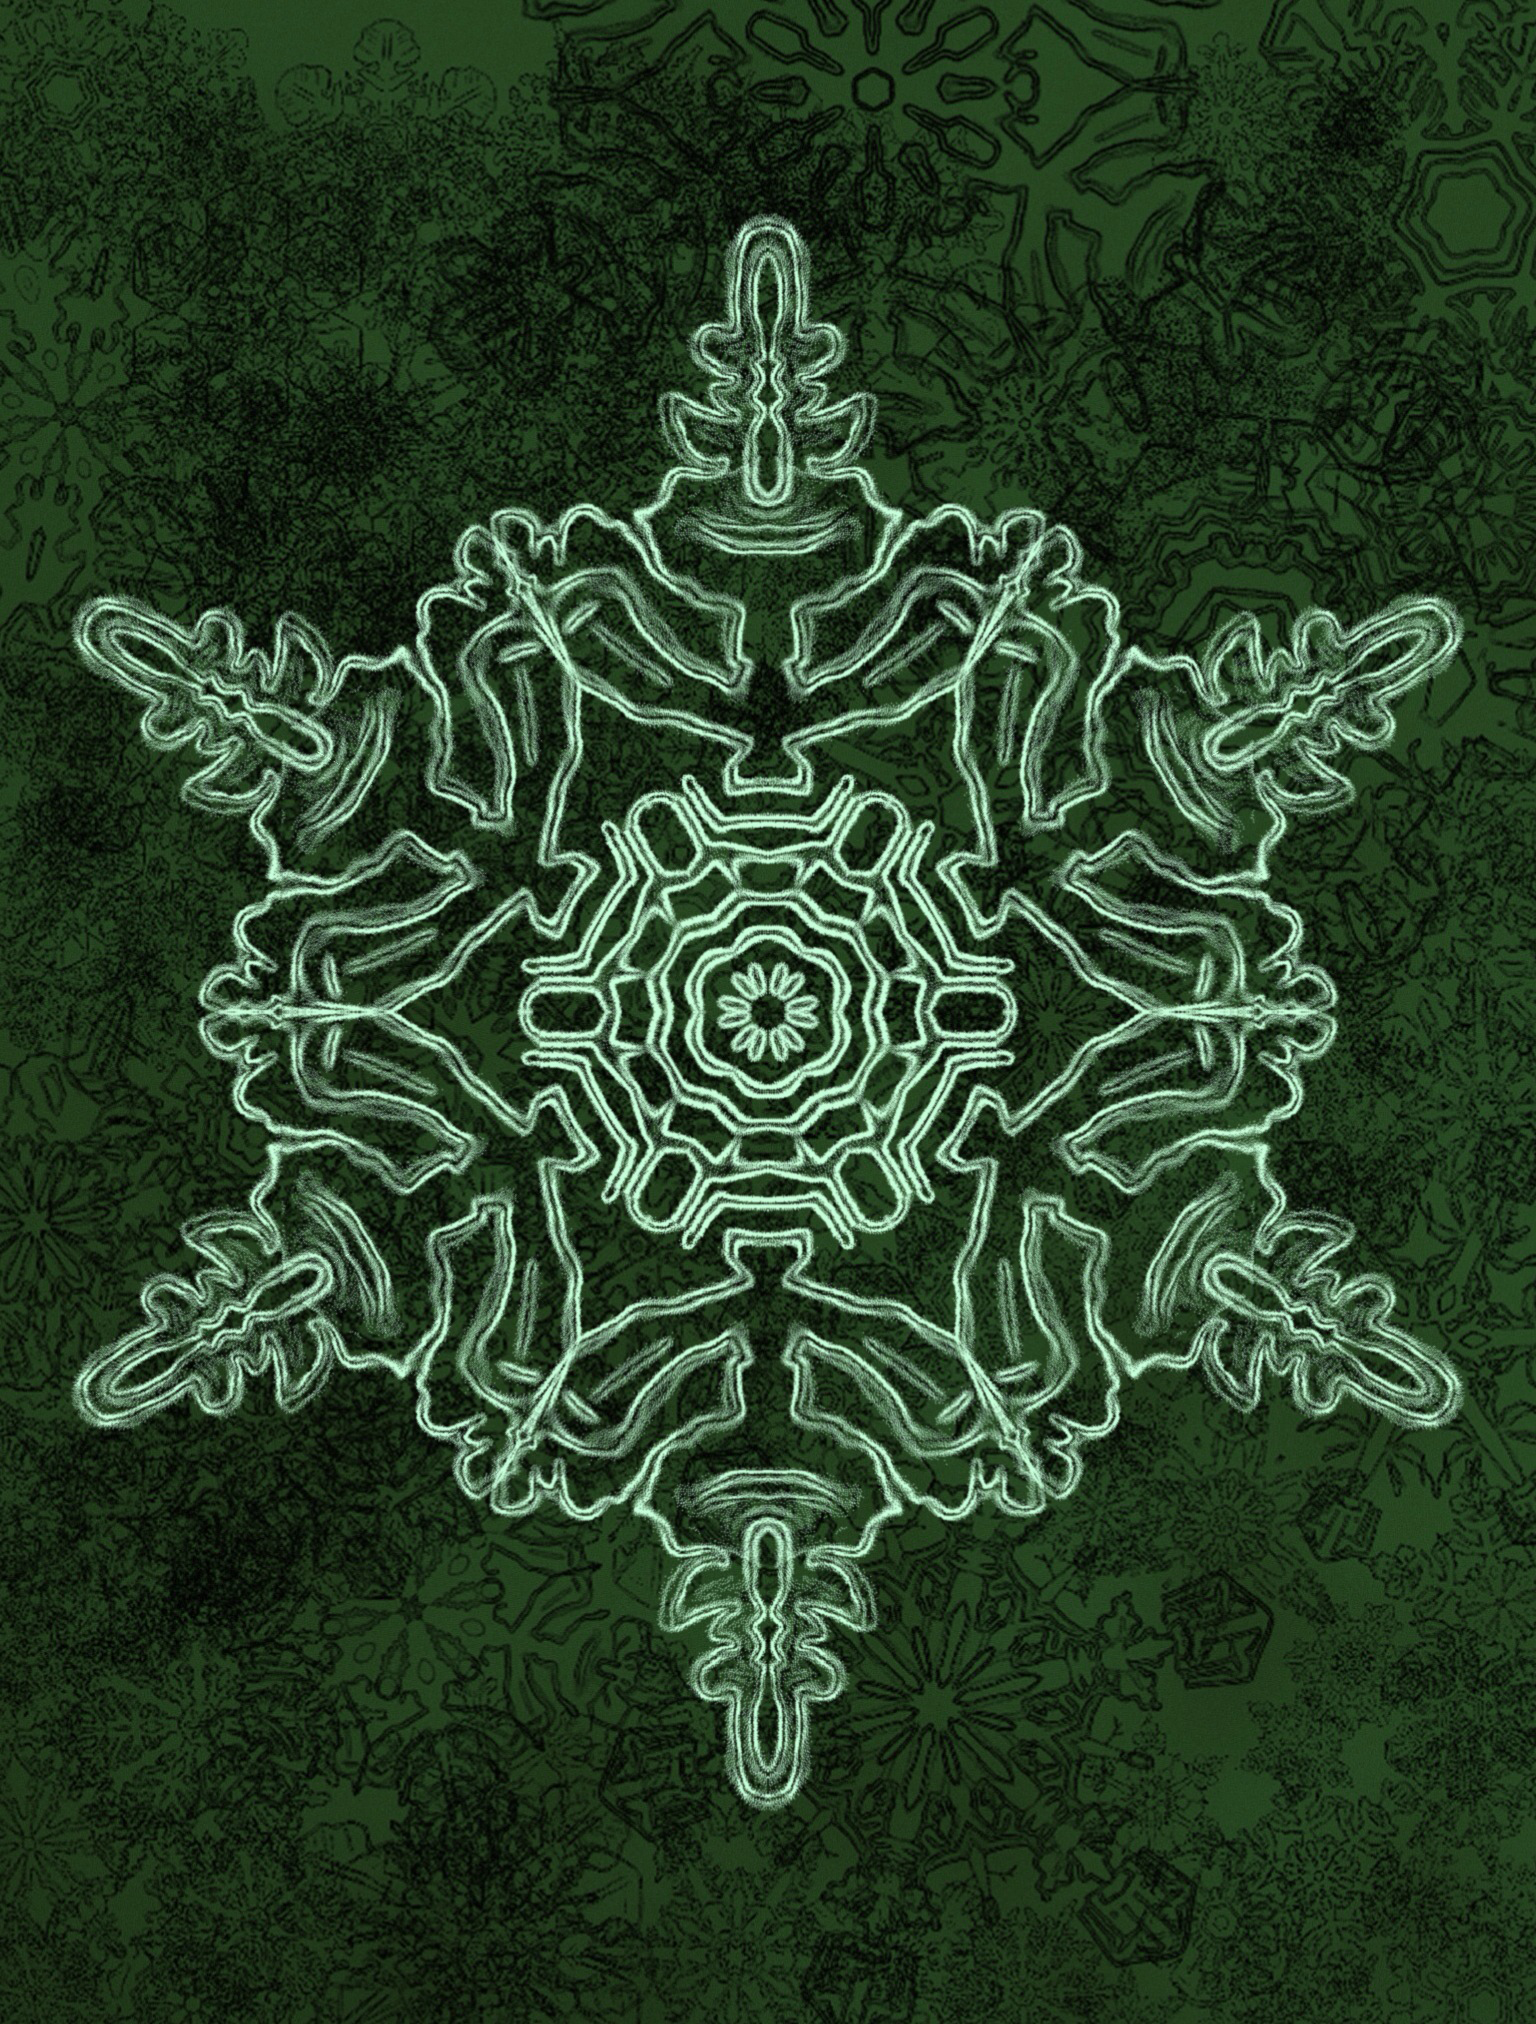 Need snowflakes for a logo? Create your own from your iPad